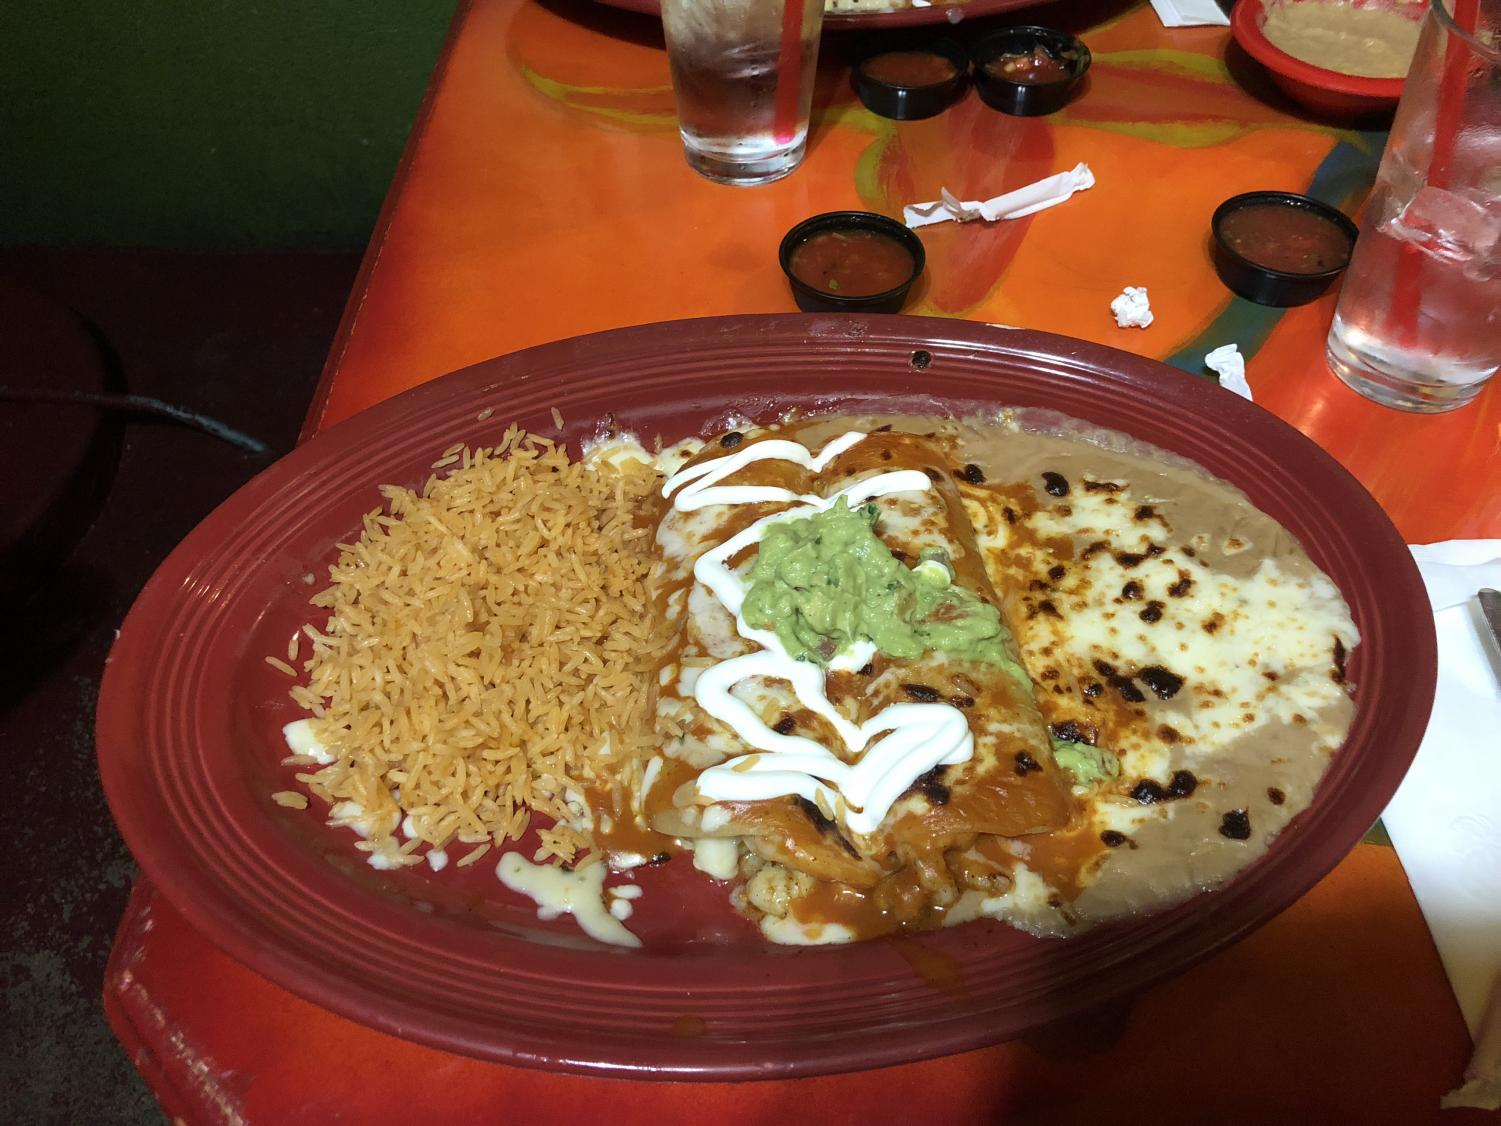 Freshly made shrimp enchiladas with red sauce, refried beans and rice are among one of the many dishes offered at Salsa and Beer.